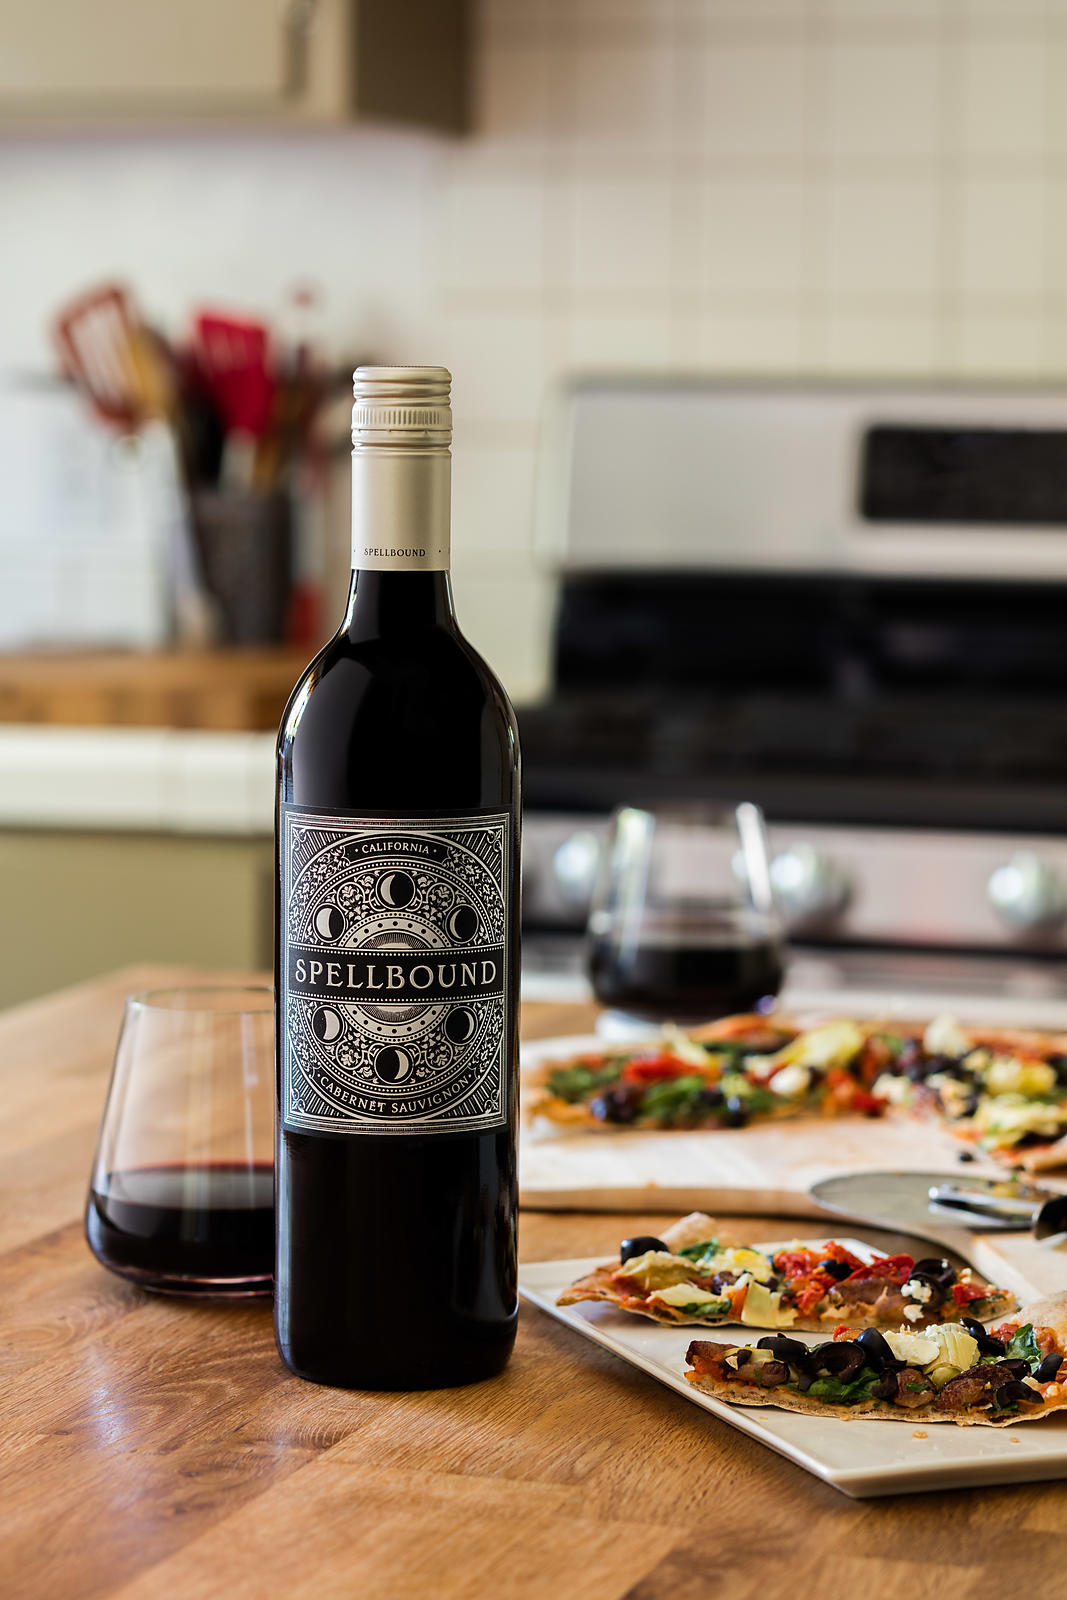 Food and wine photography by San Francisco photographer Jason Tinacci